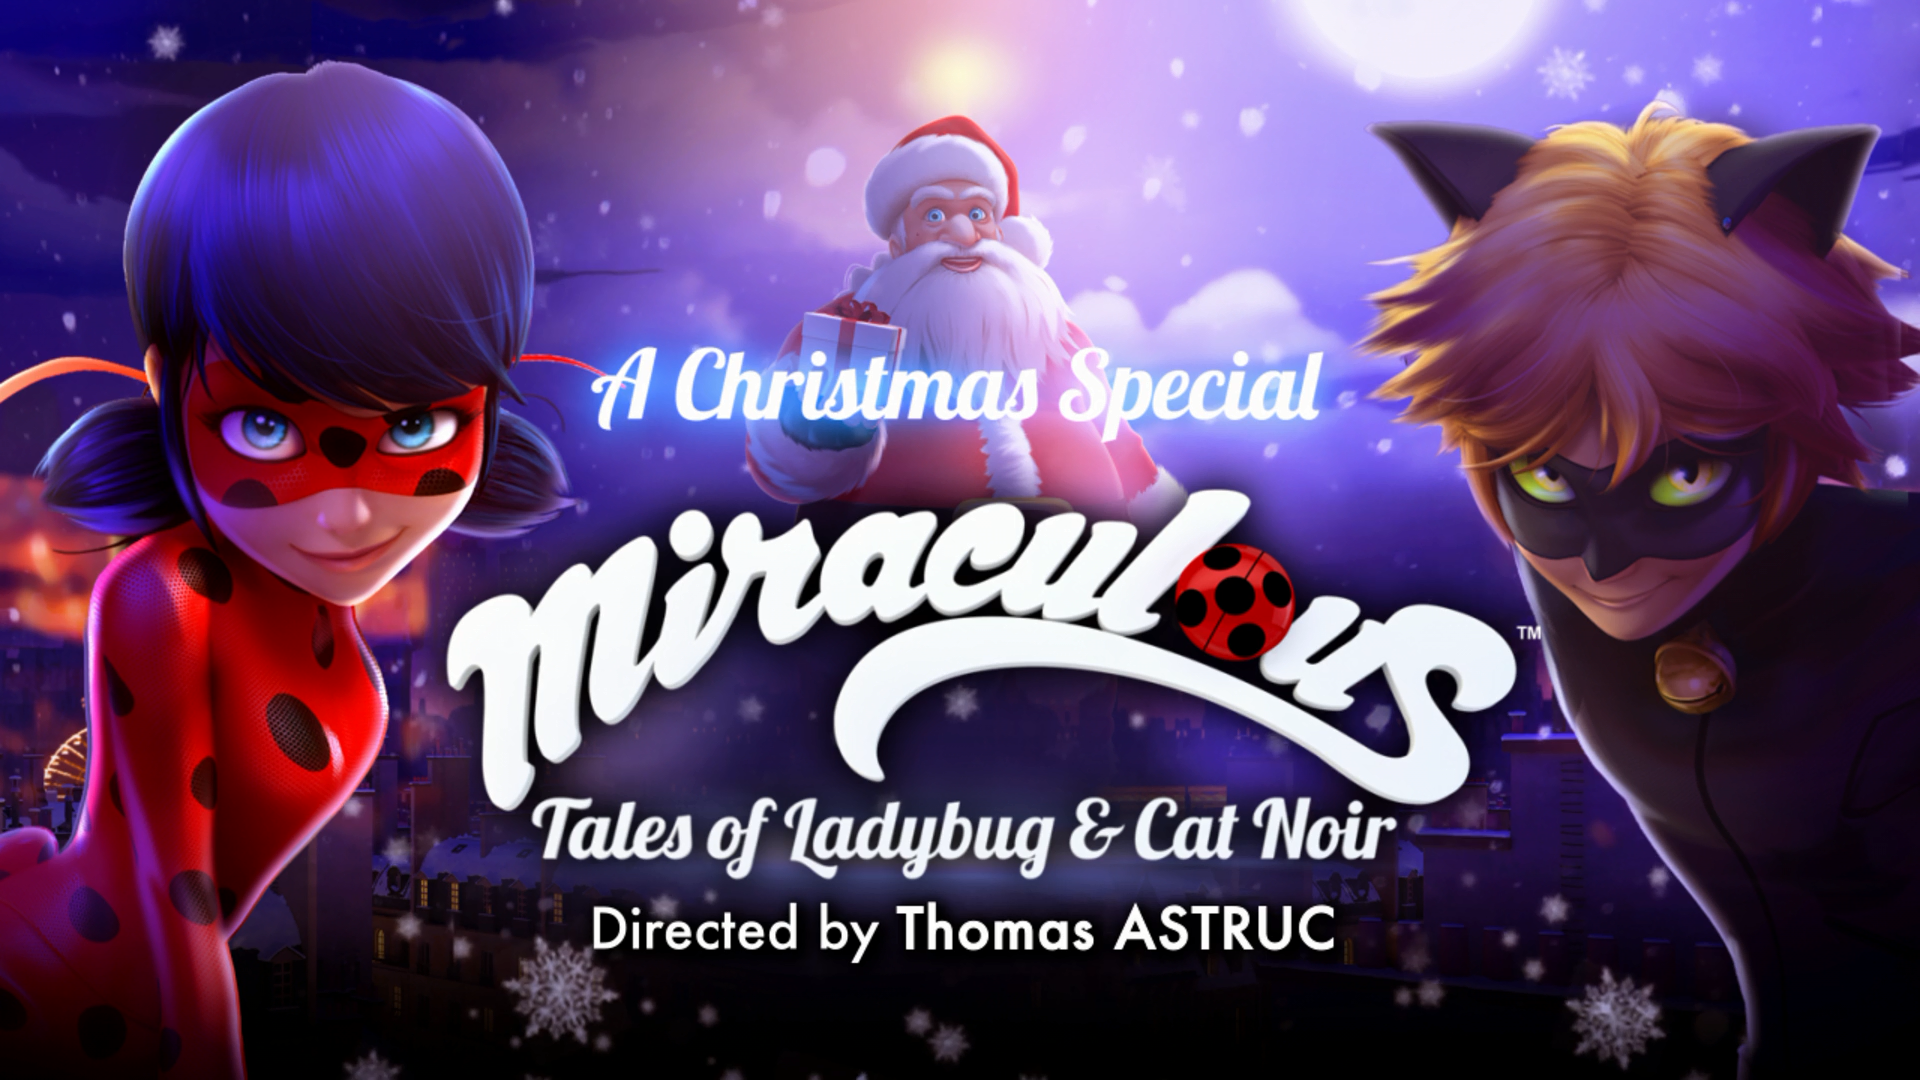 A Christmas Special | Miraculous Ladybug Wiki | FANDOM powered by Wikia